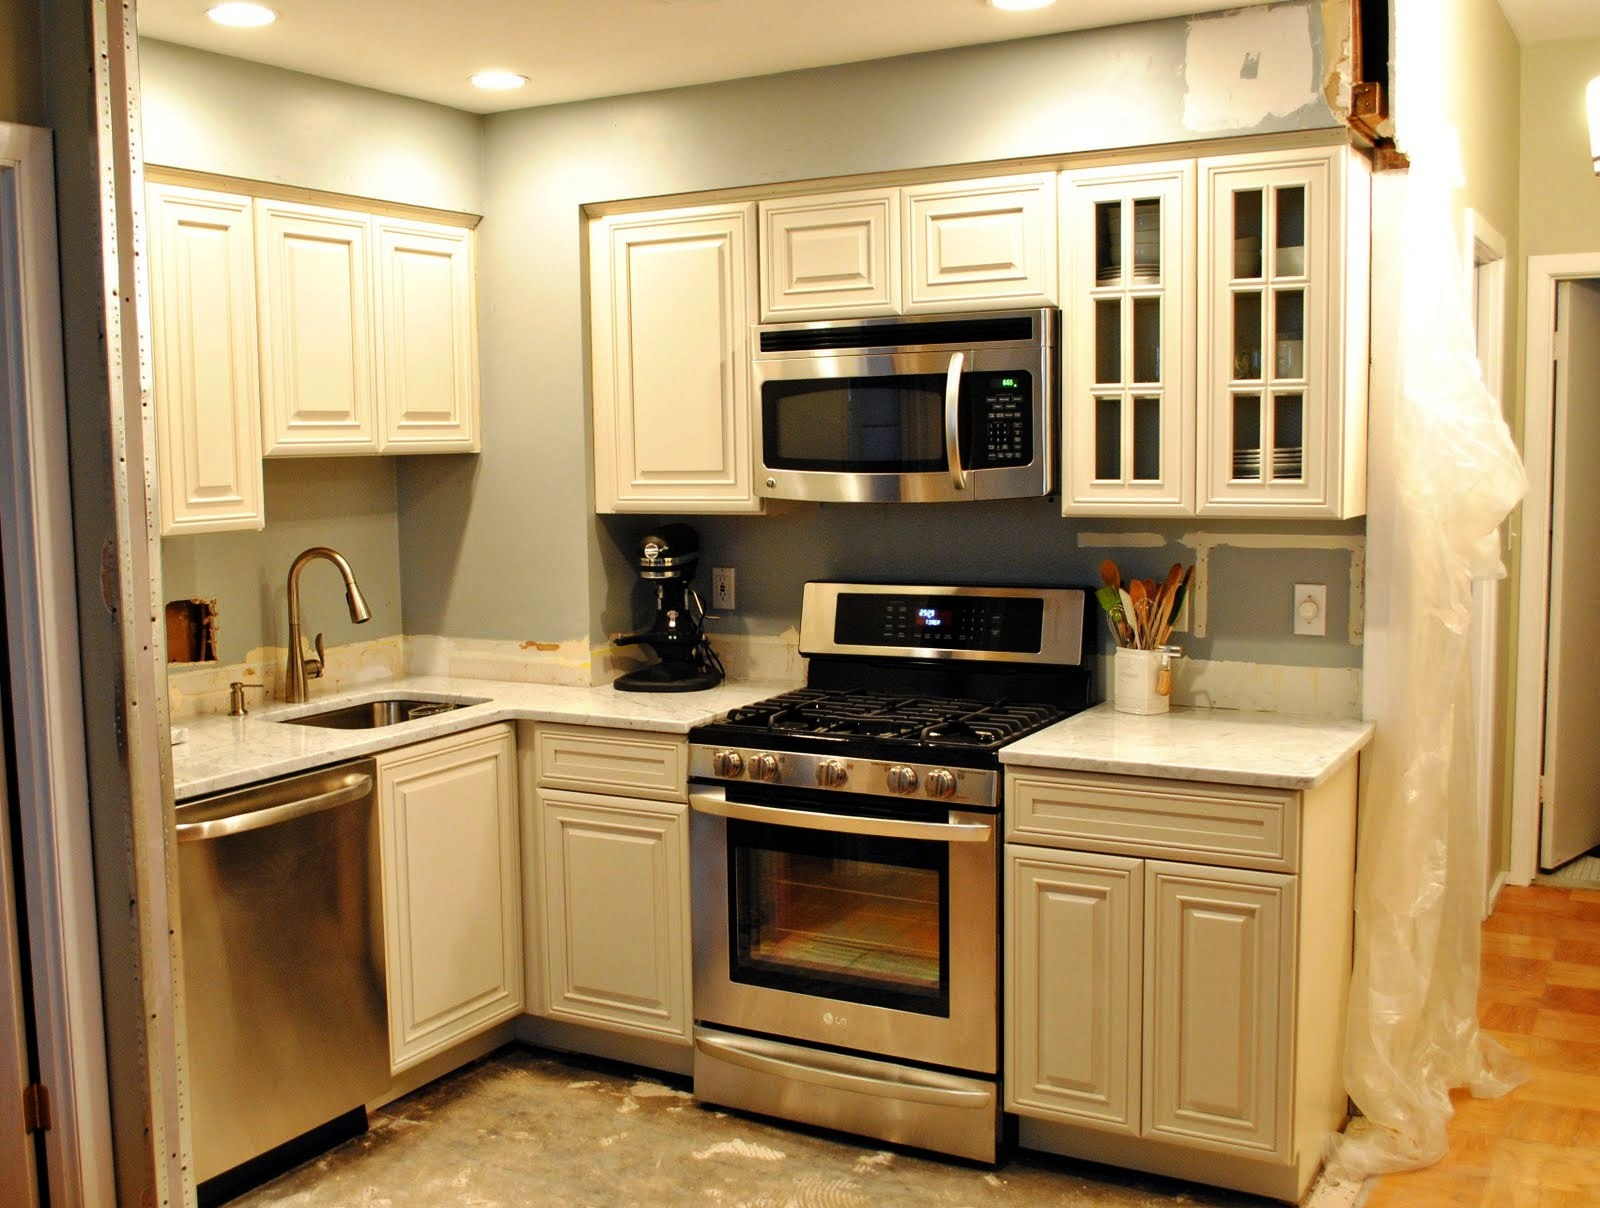 Best Cabinets For Small Kitchen